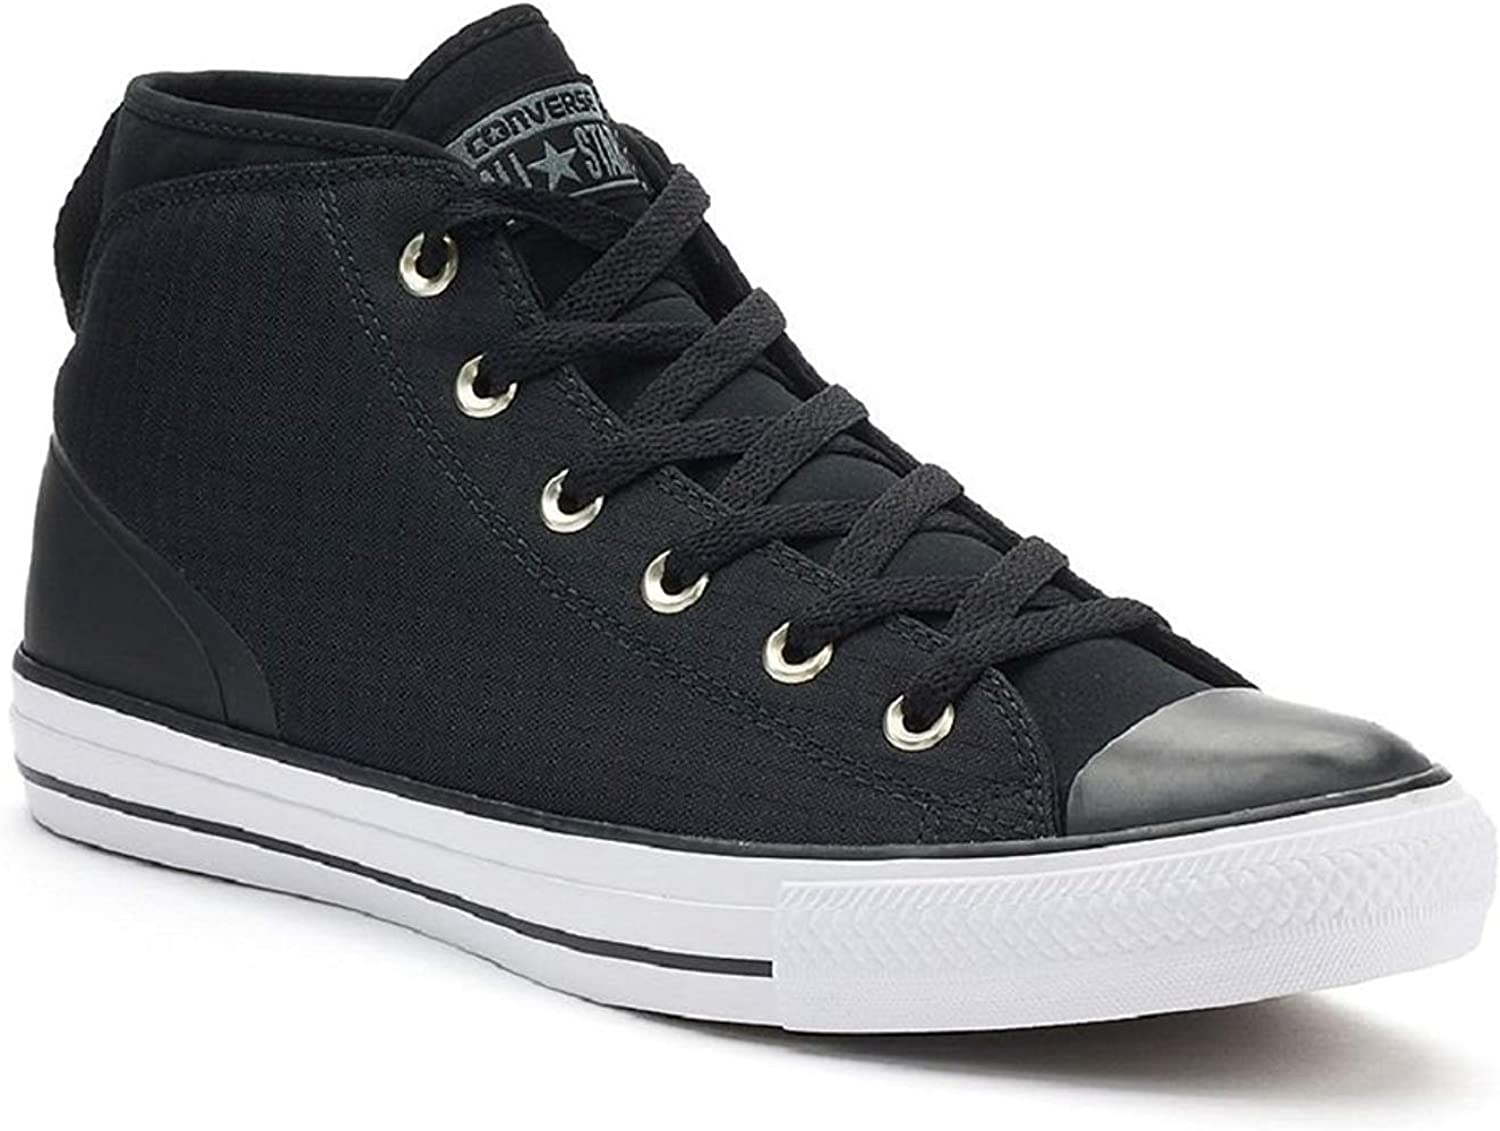 Converse Chuck Taylor All-Star Street Mens Fashion-Sneakers 157529C